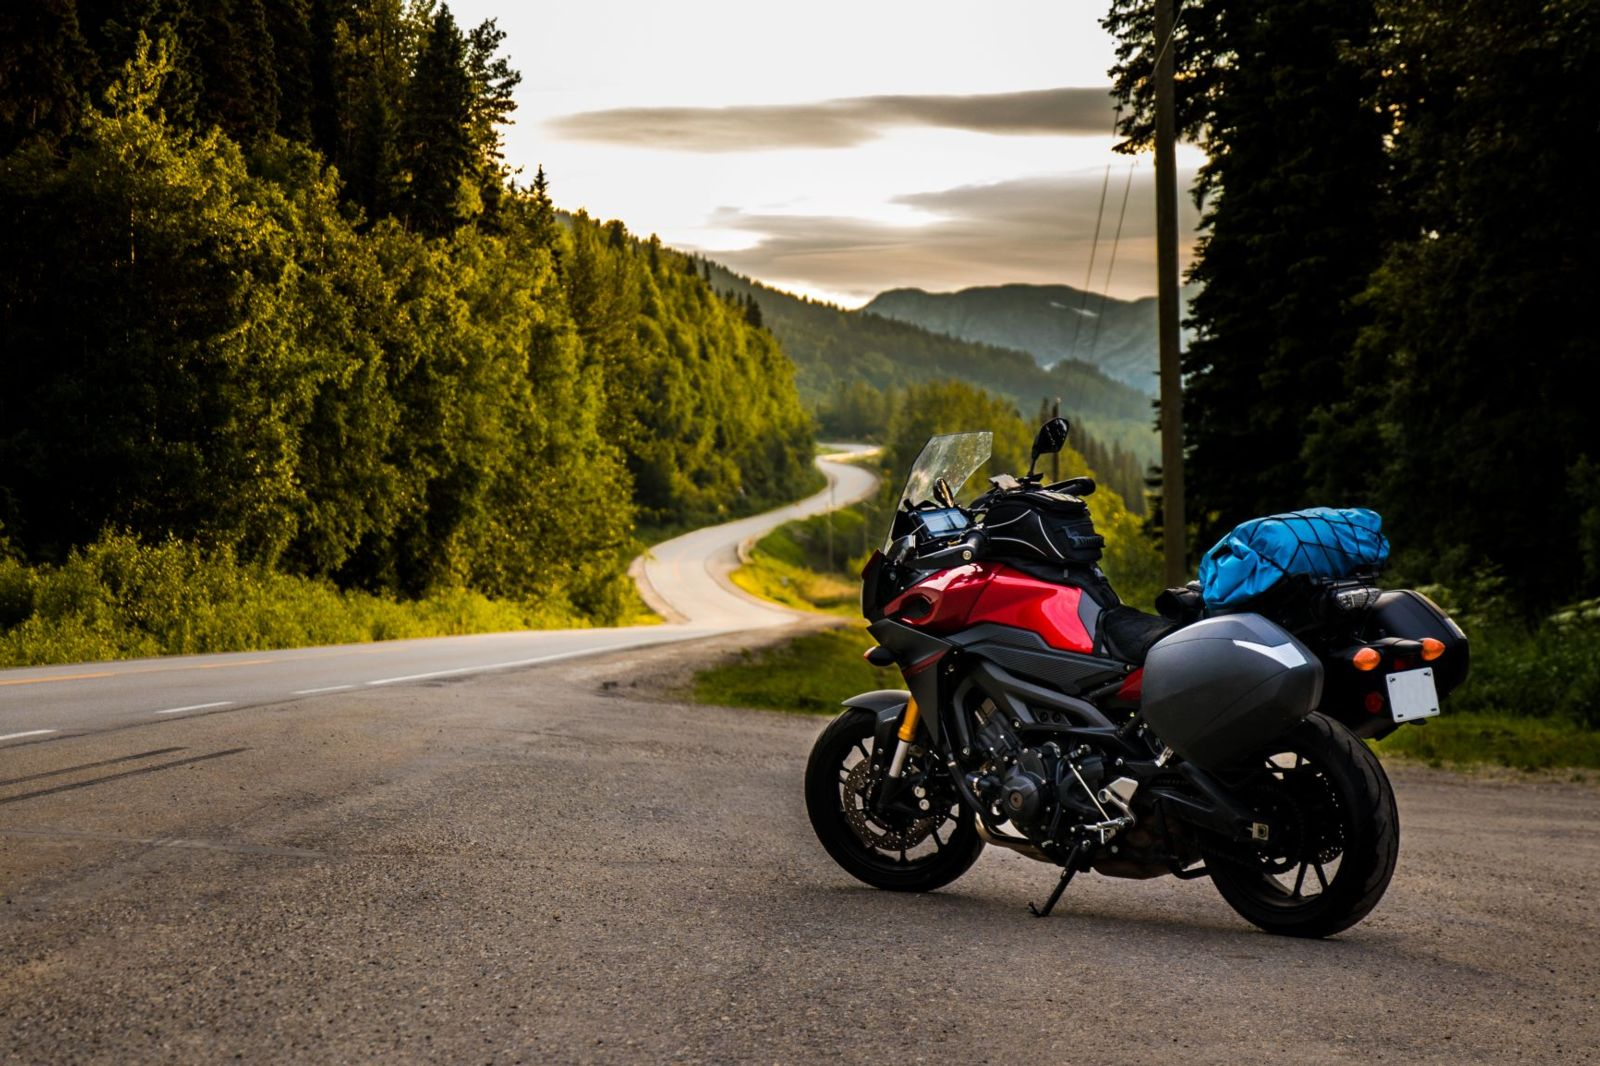 What You Need to Know Before Talking to an Insurance Company About Your Motorcycle Crash